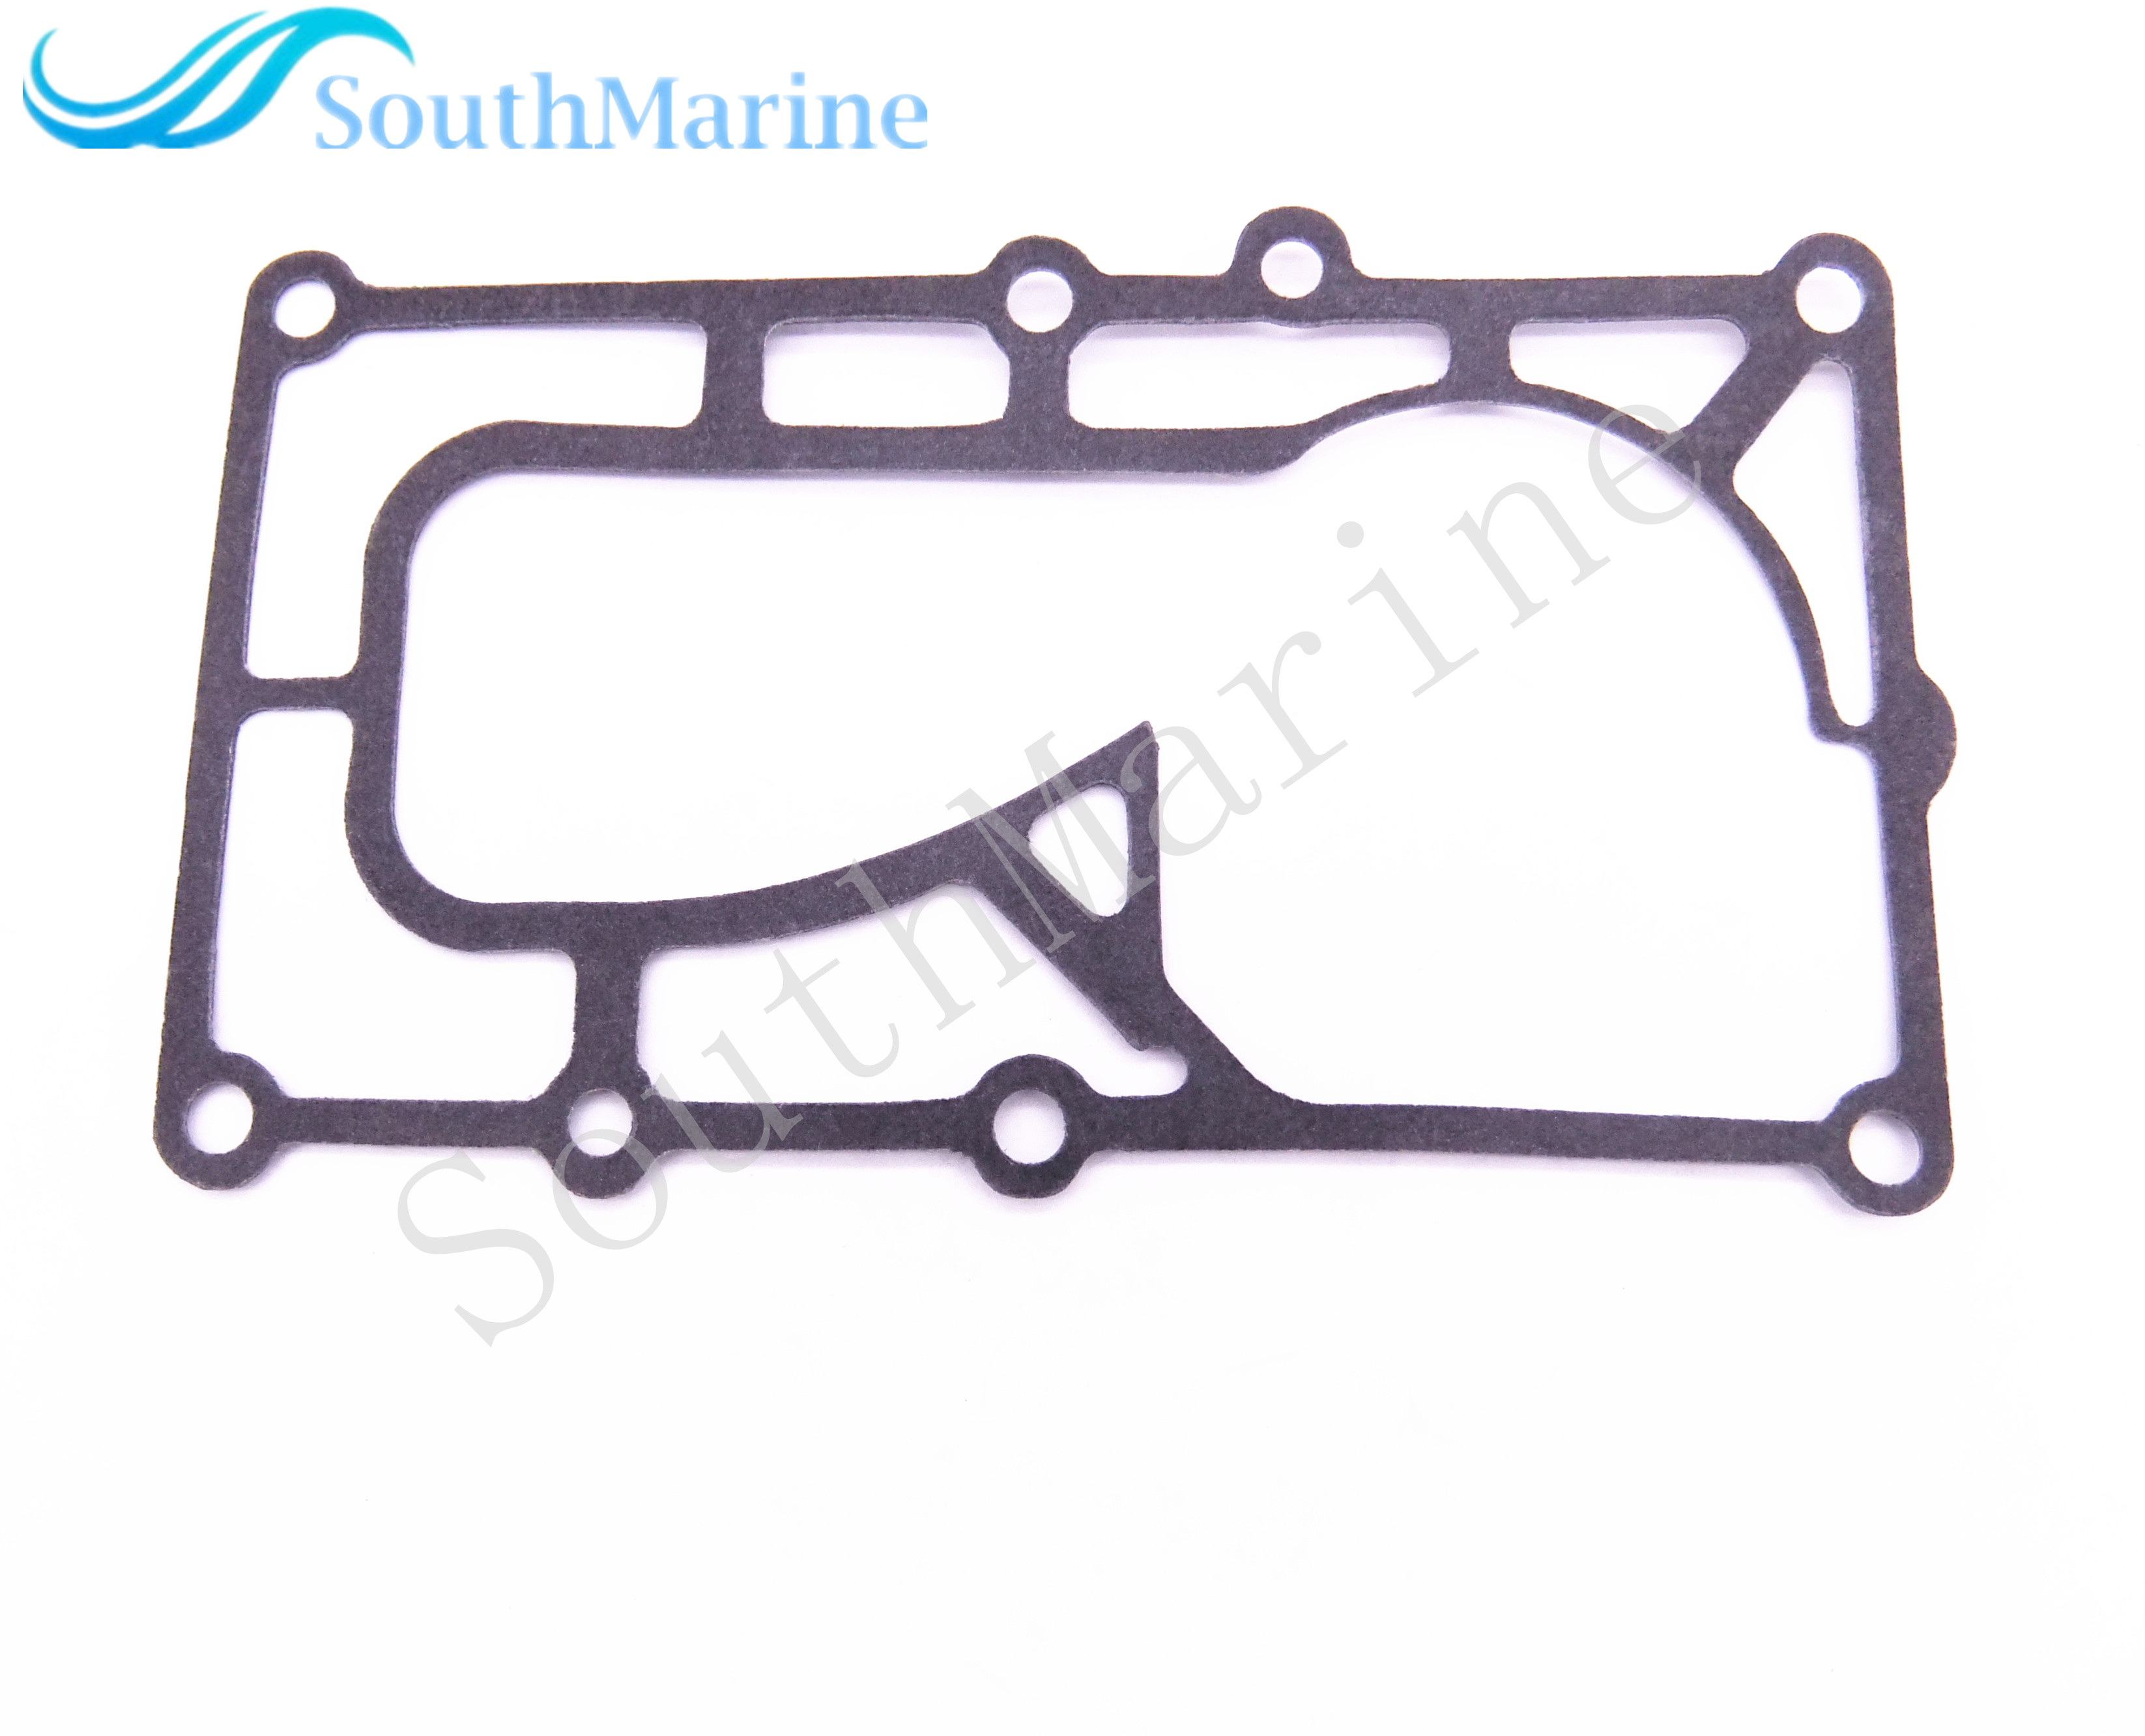 16115 812947 27-16115 27-812947 27-812947001 Drive Shaft Housing Gasket For Mercury Marine 2-Stroke 4HP 5HP Outboard